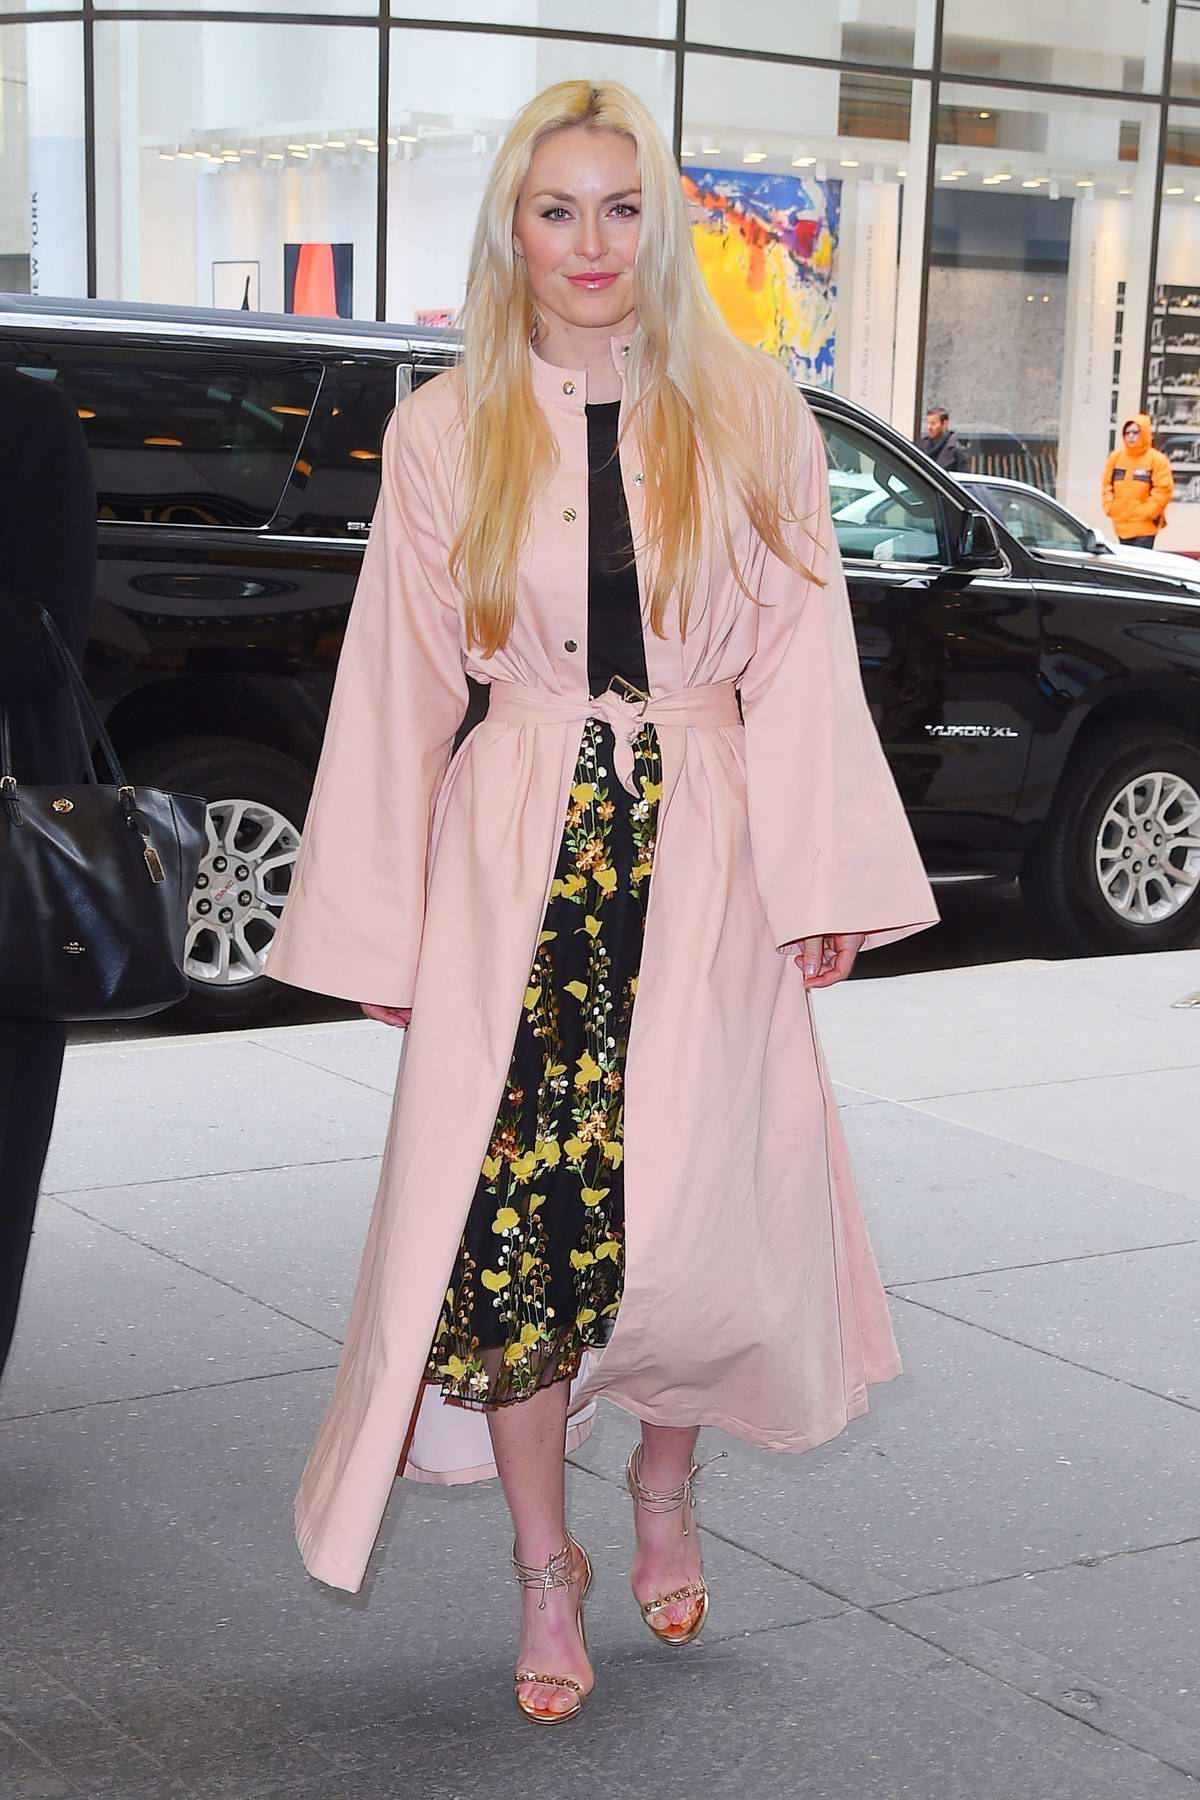 Lindsey Vonn wore a baby pink trench coat as she arrives at the 'New York Live' TV show in New York City